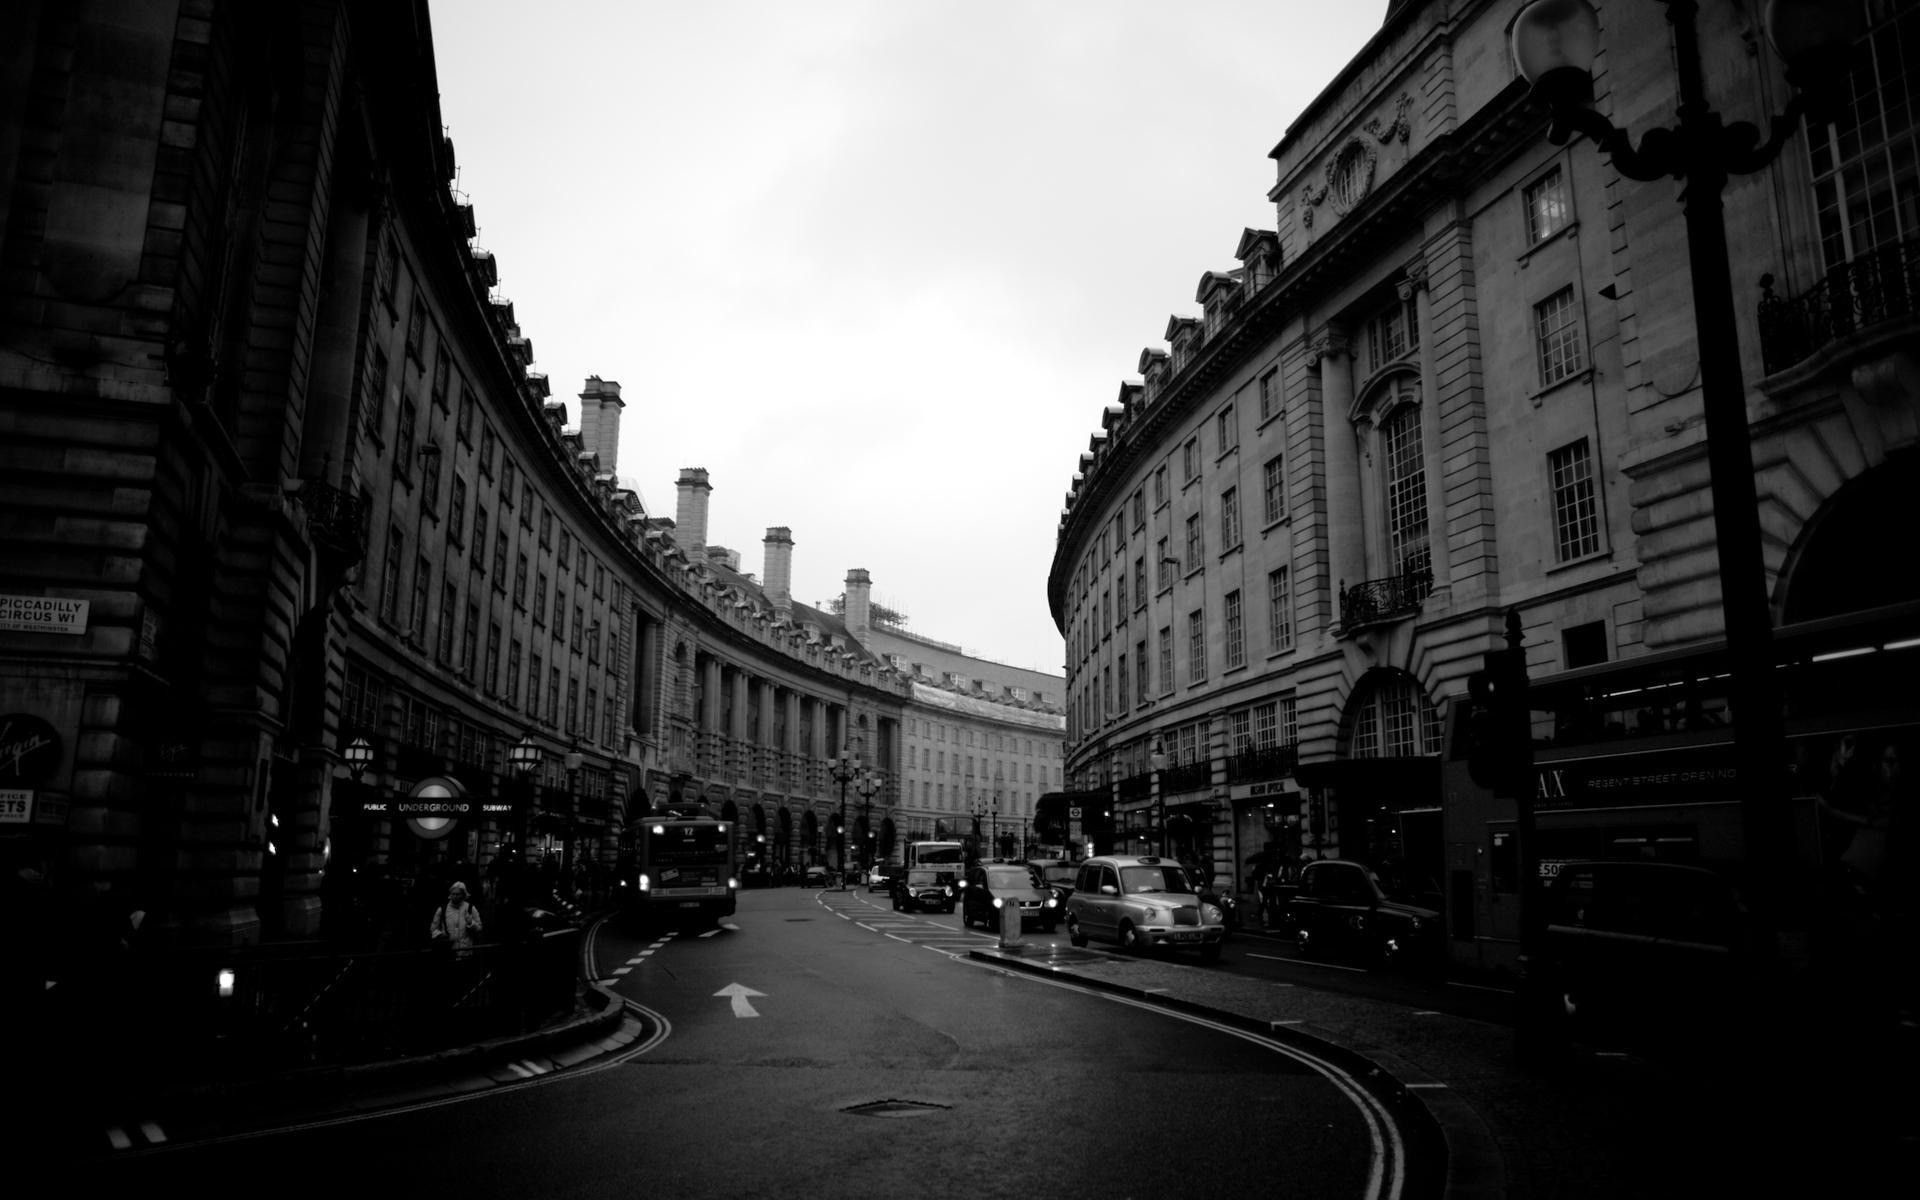 1920x1200 London Street Wallpaper High Quality Resolution Free Download Wallpapers  Background  px 219.79 KB